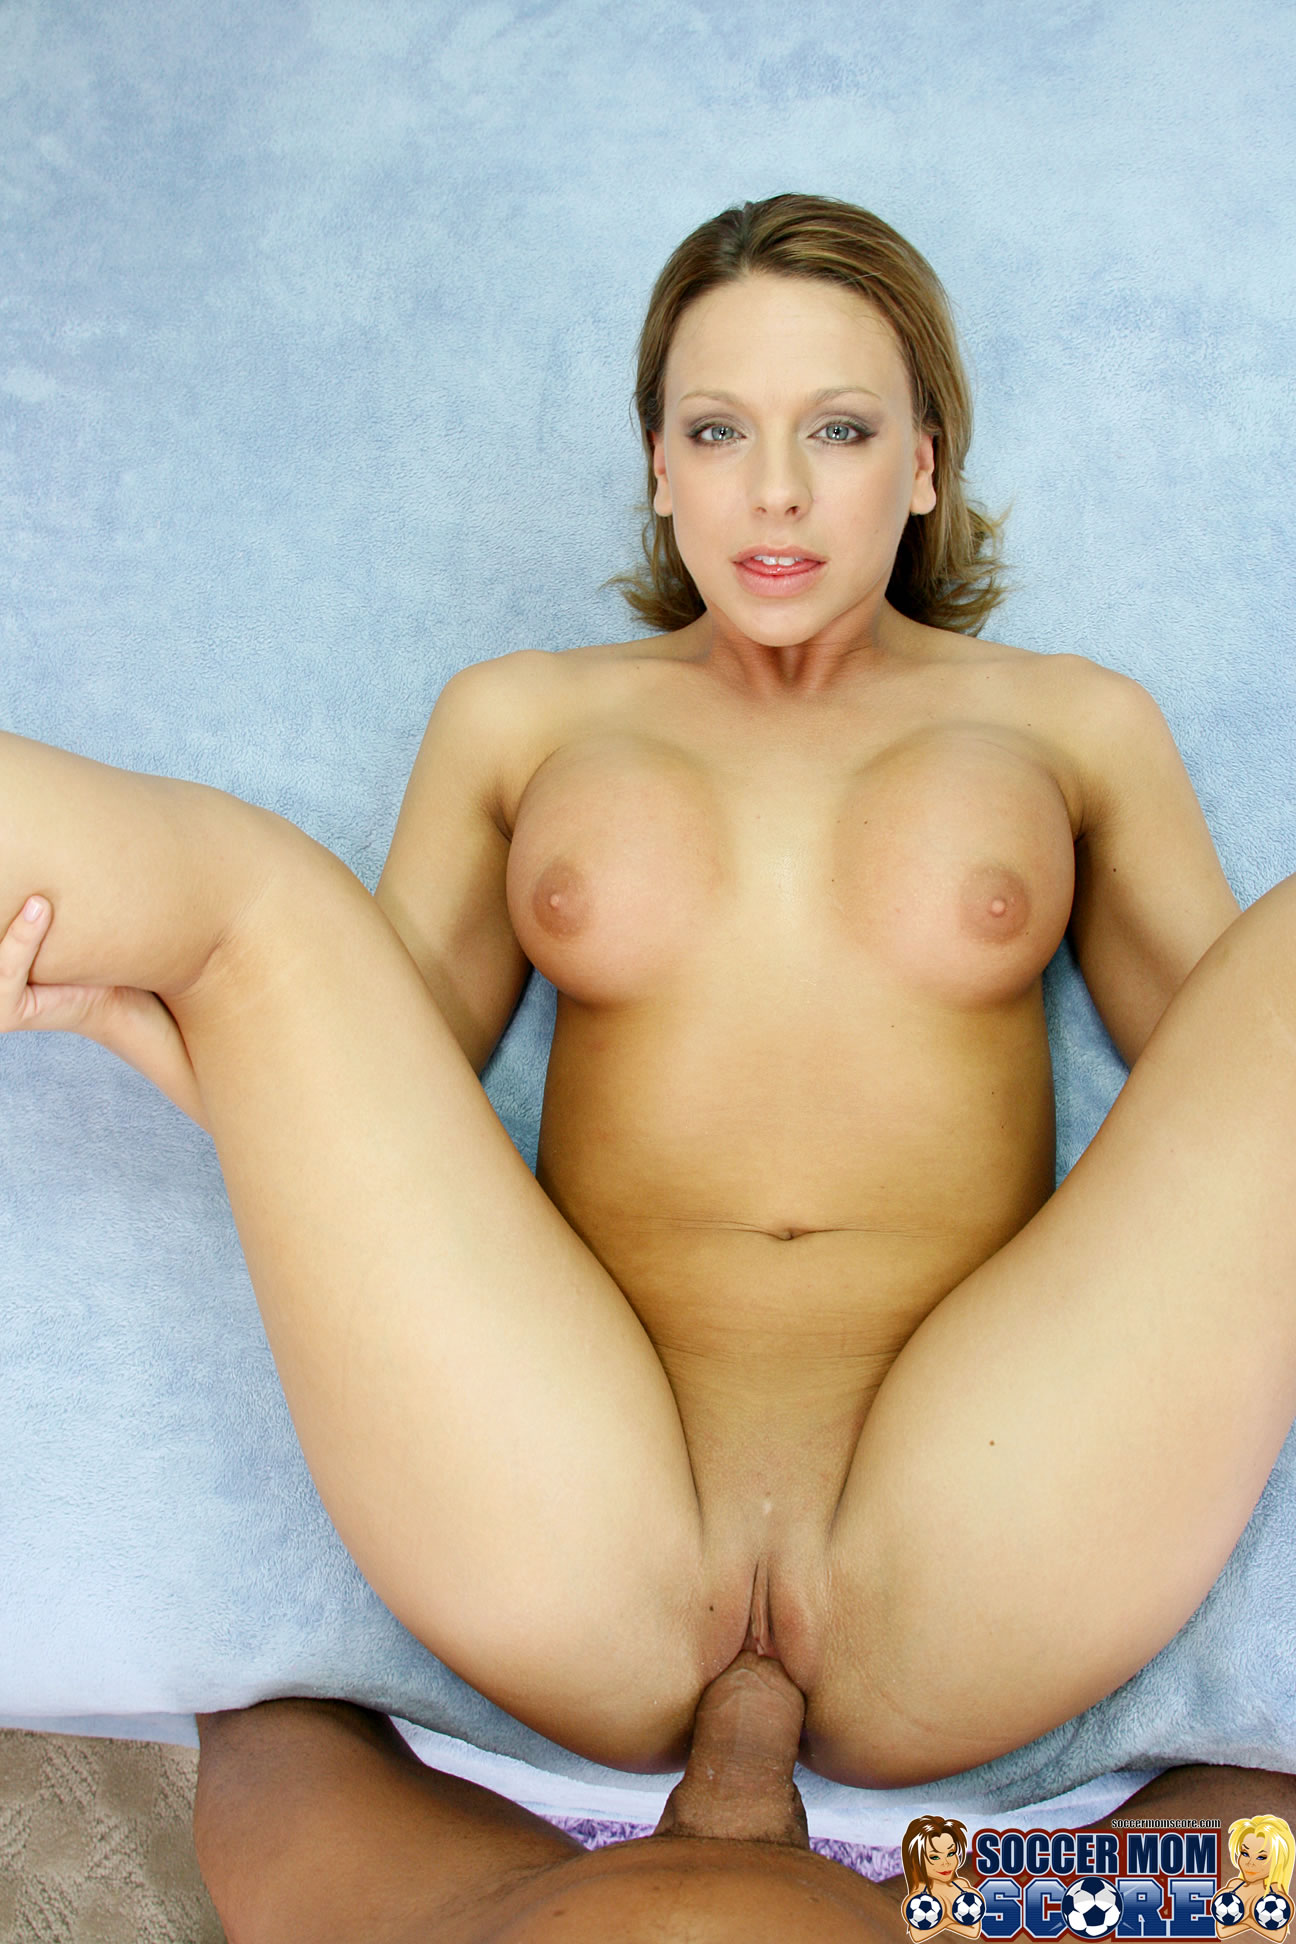 Thought differently, Hot mom gets nude are not